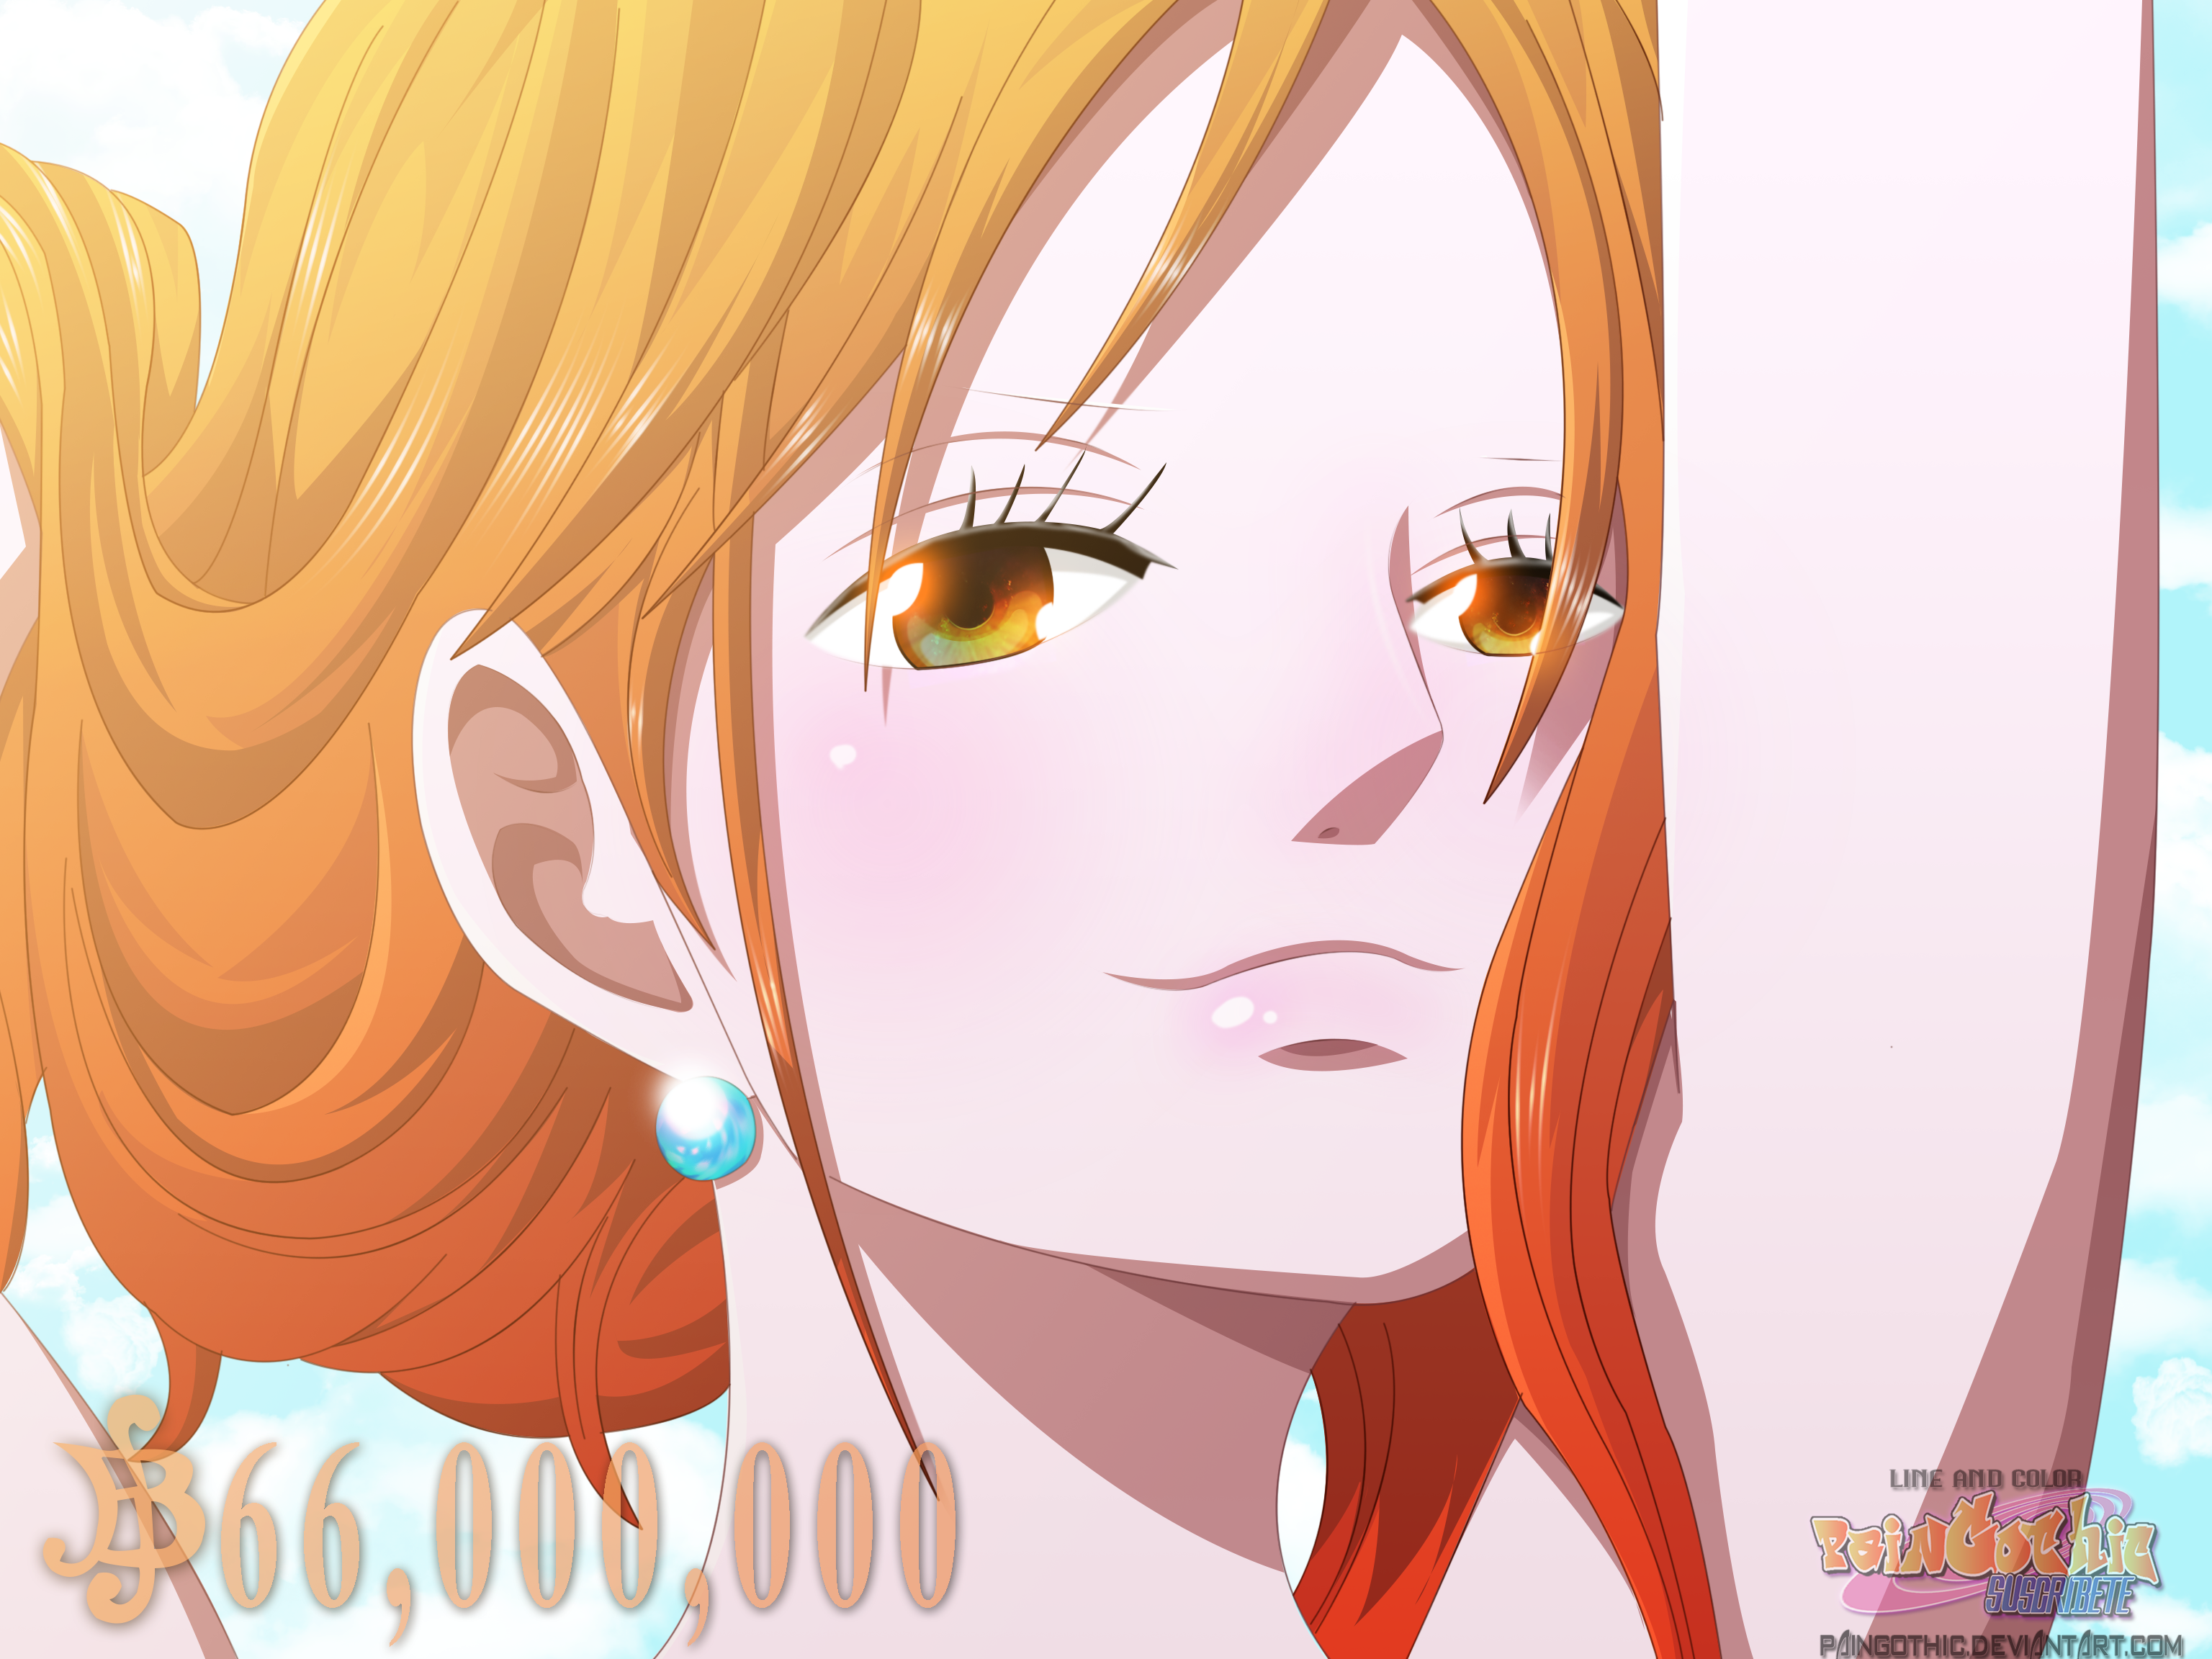 Nami New Wanted - One Piece by PainGothic on DeviantArt